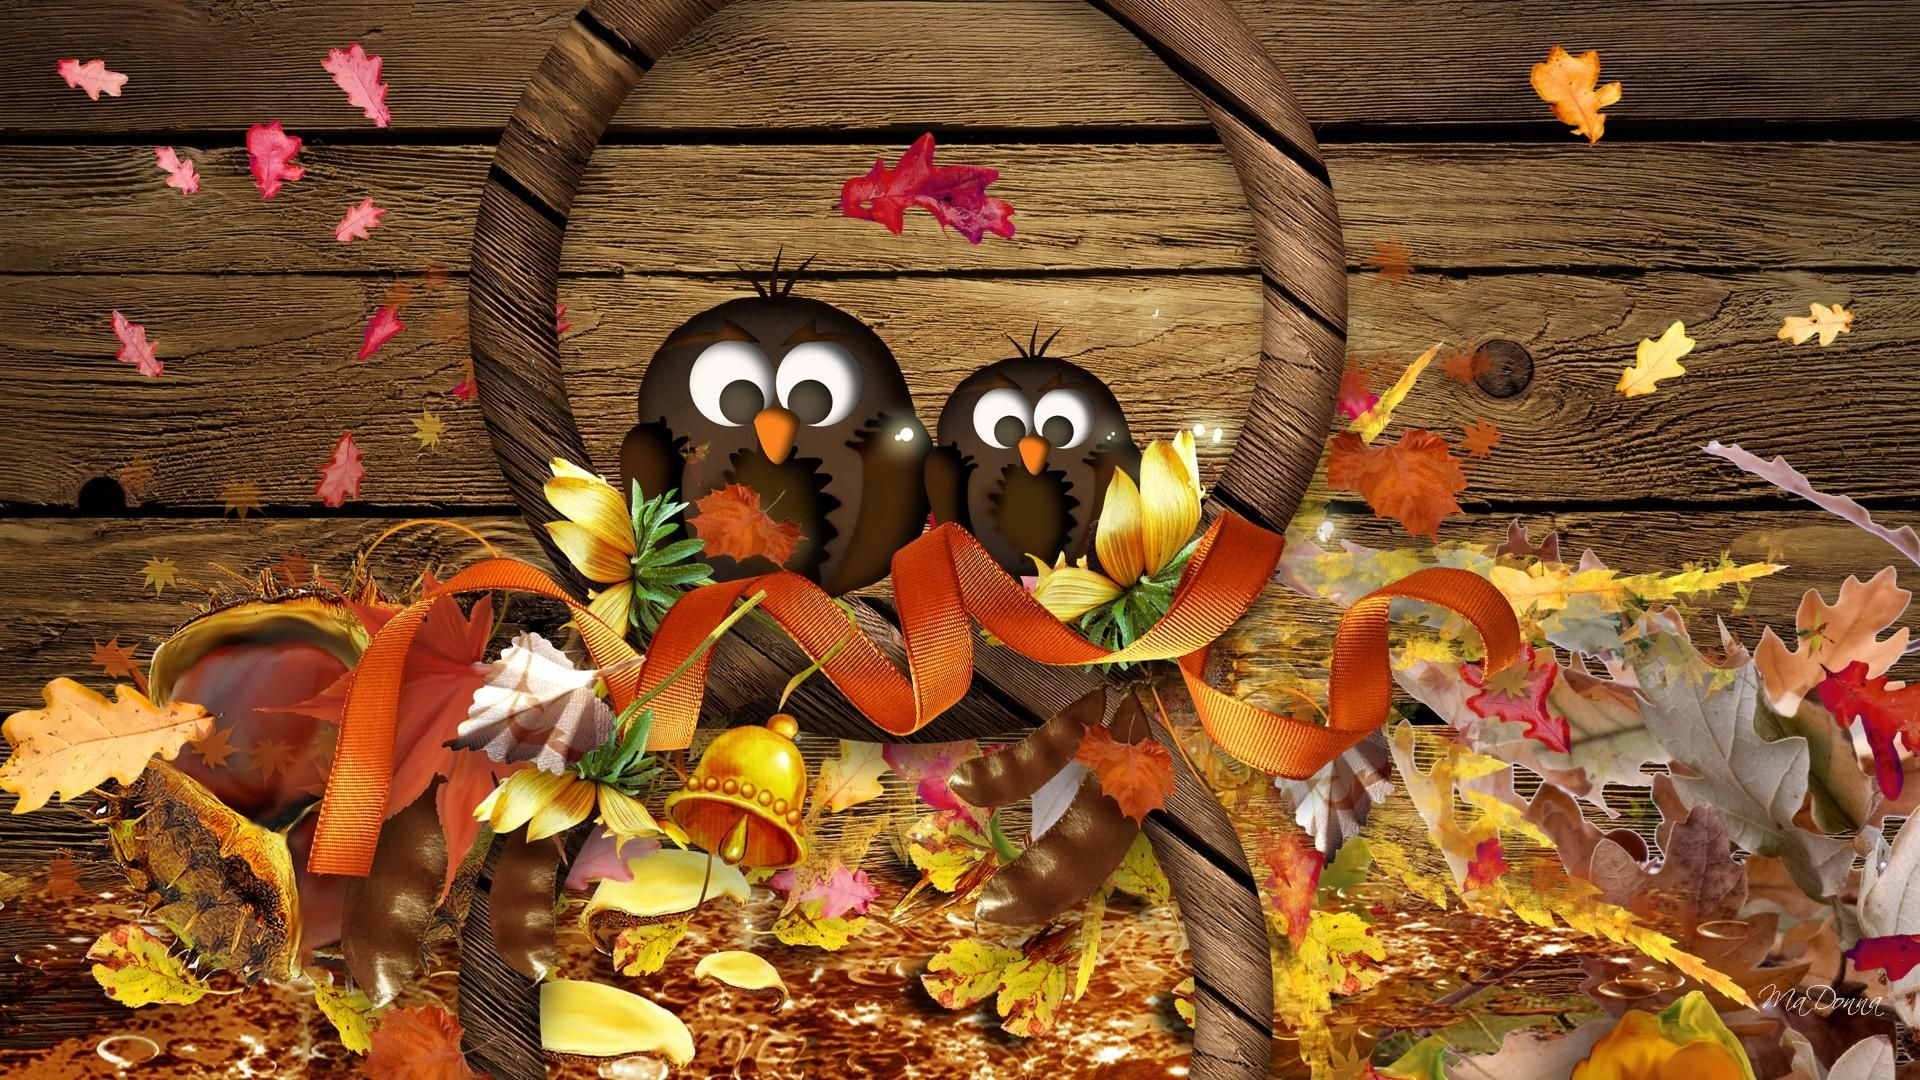 Cute Thanksgiving Screensavers Thanksgiving Hd Desktop Wallpapers For Thanksgiving Background Free Thanksgiving Wallpaper Thanksgiving Wallpaper